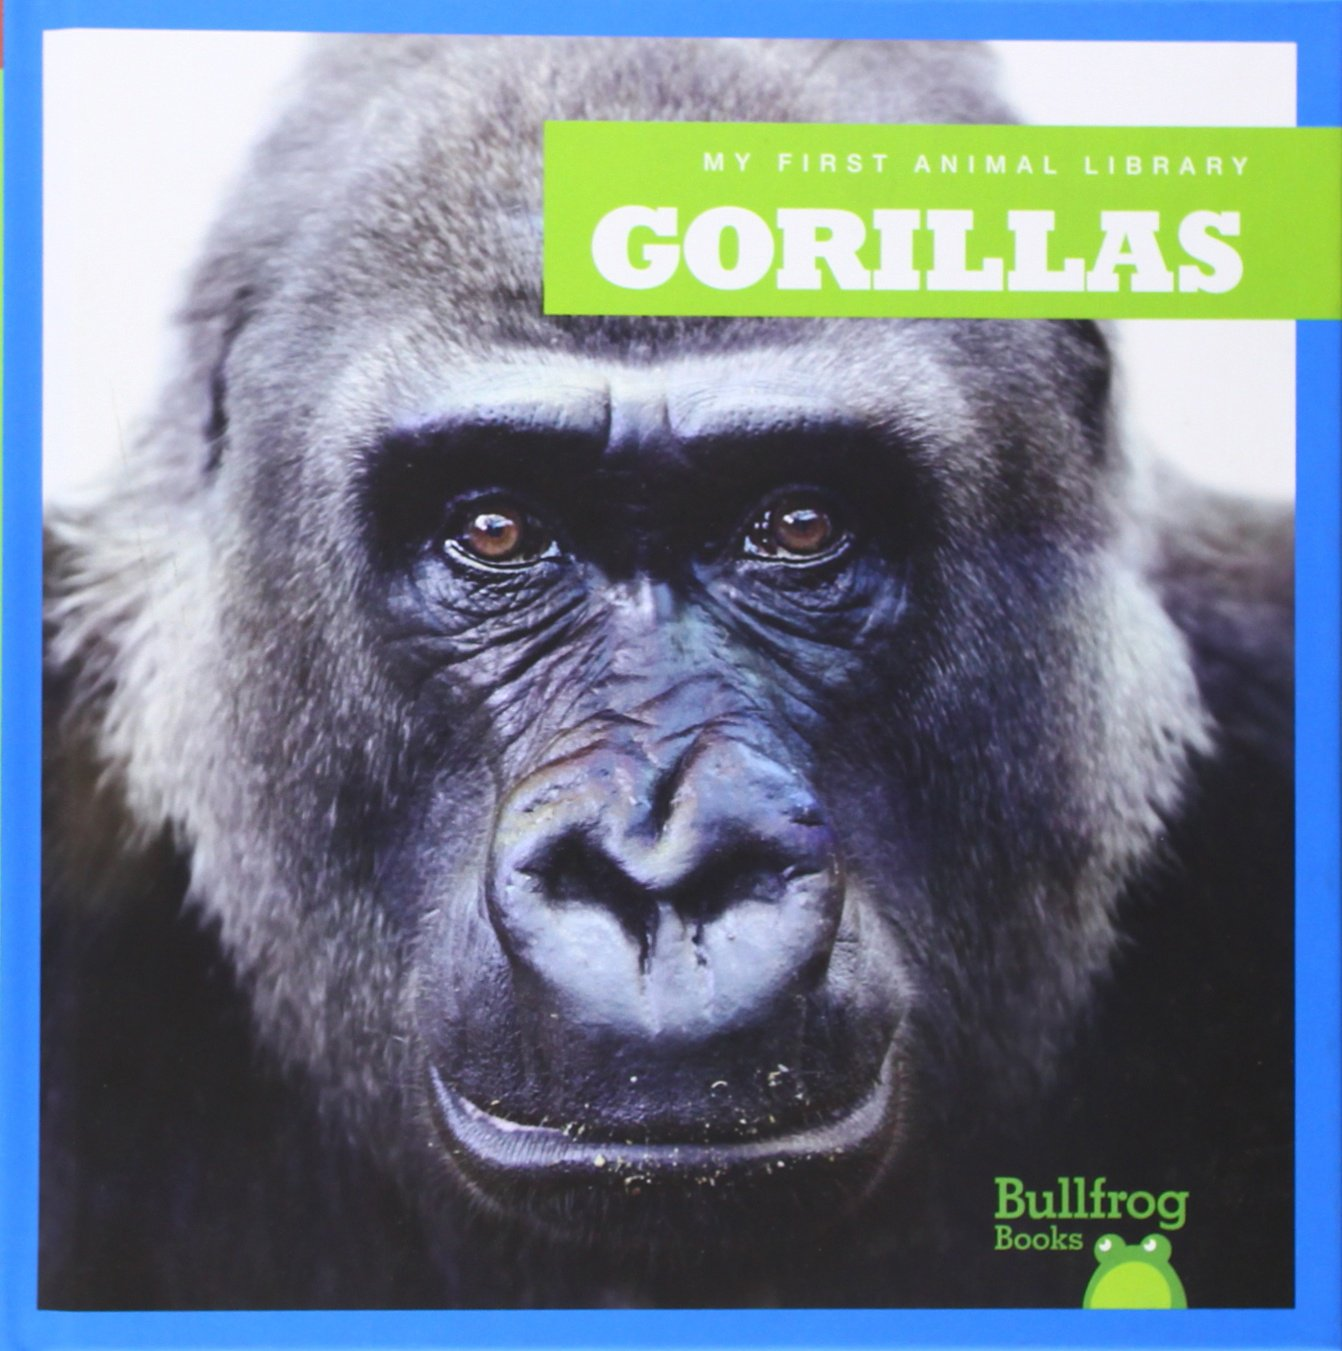 Gorillas (Bullfrog Books: My First Animal Library)